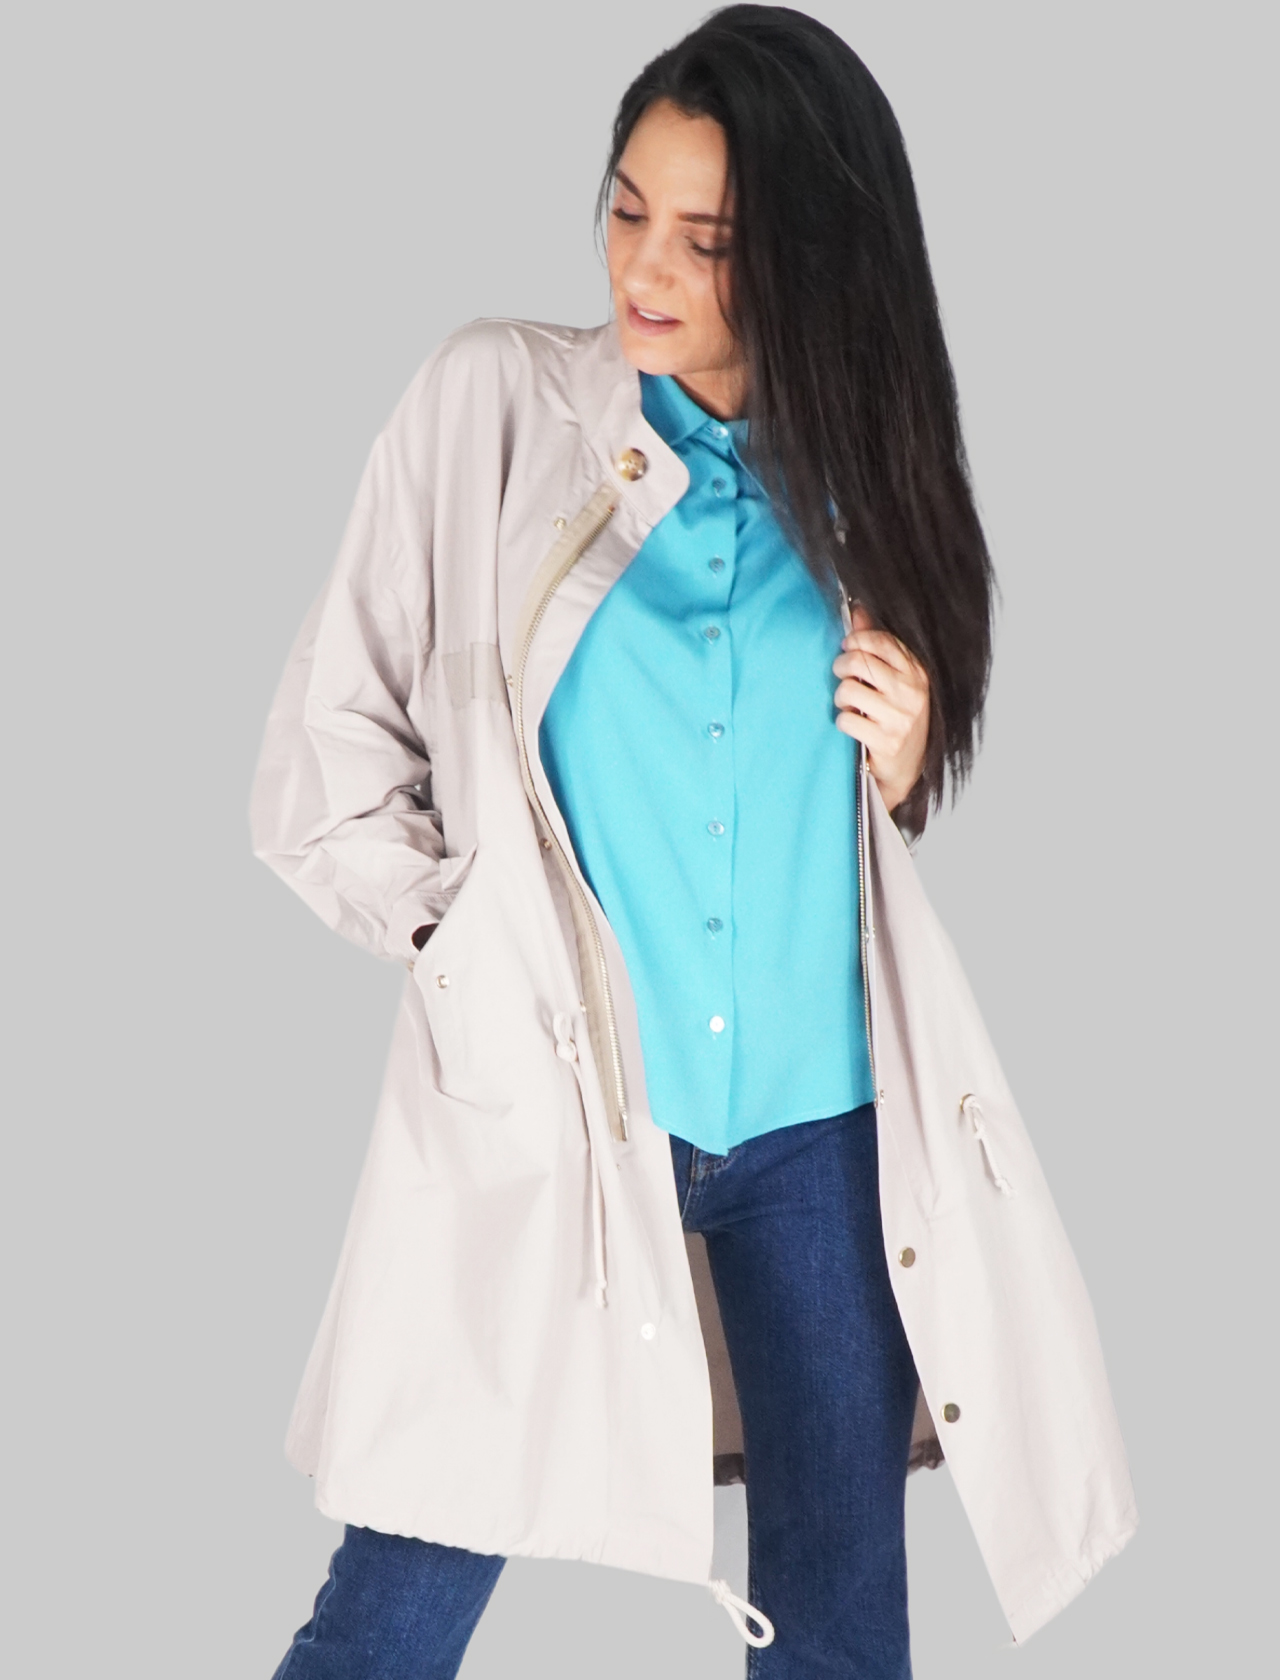 Women's Clothing Duster Coat Single-Breasted Over Trench in Ivory Color with Zipper and Buttons Mercì |  | H135R015